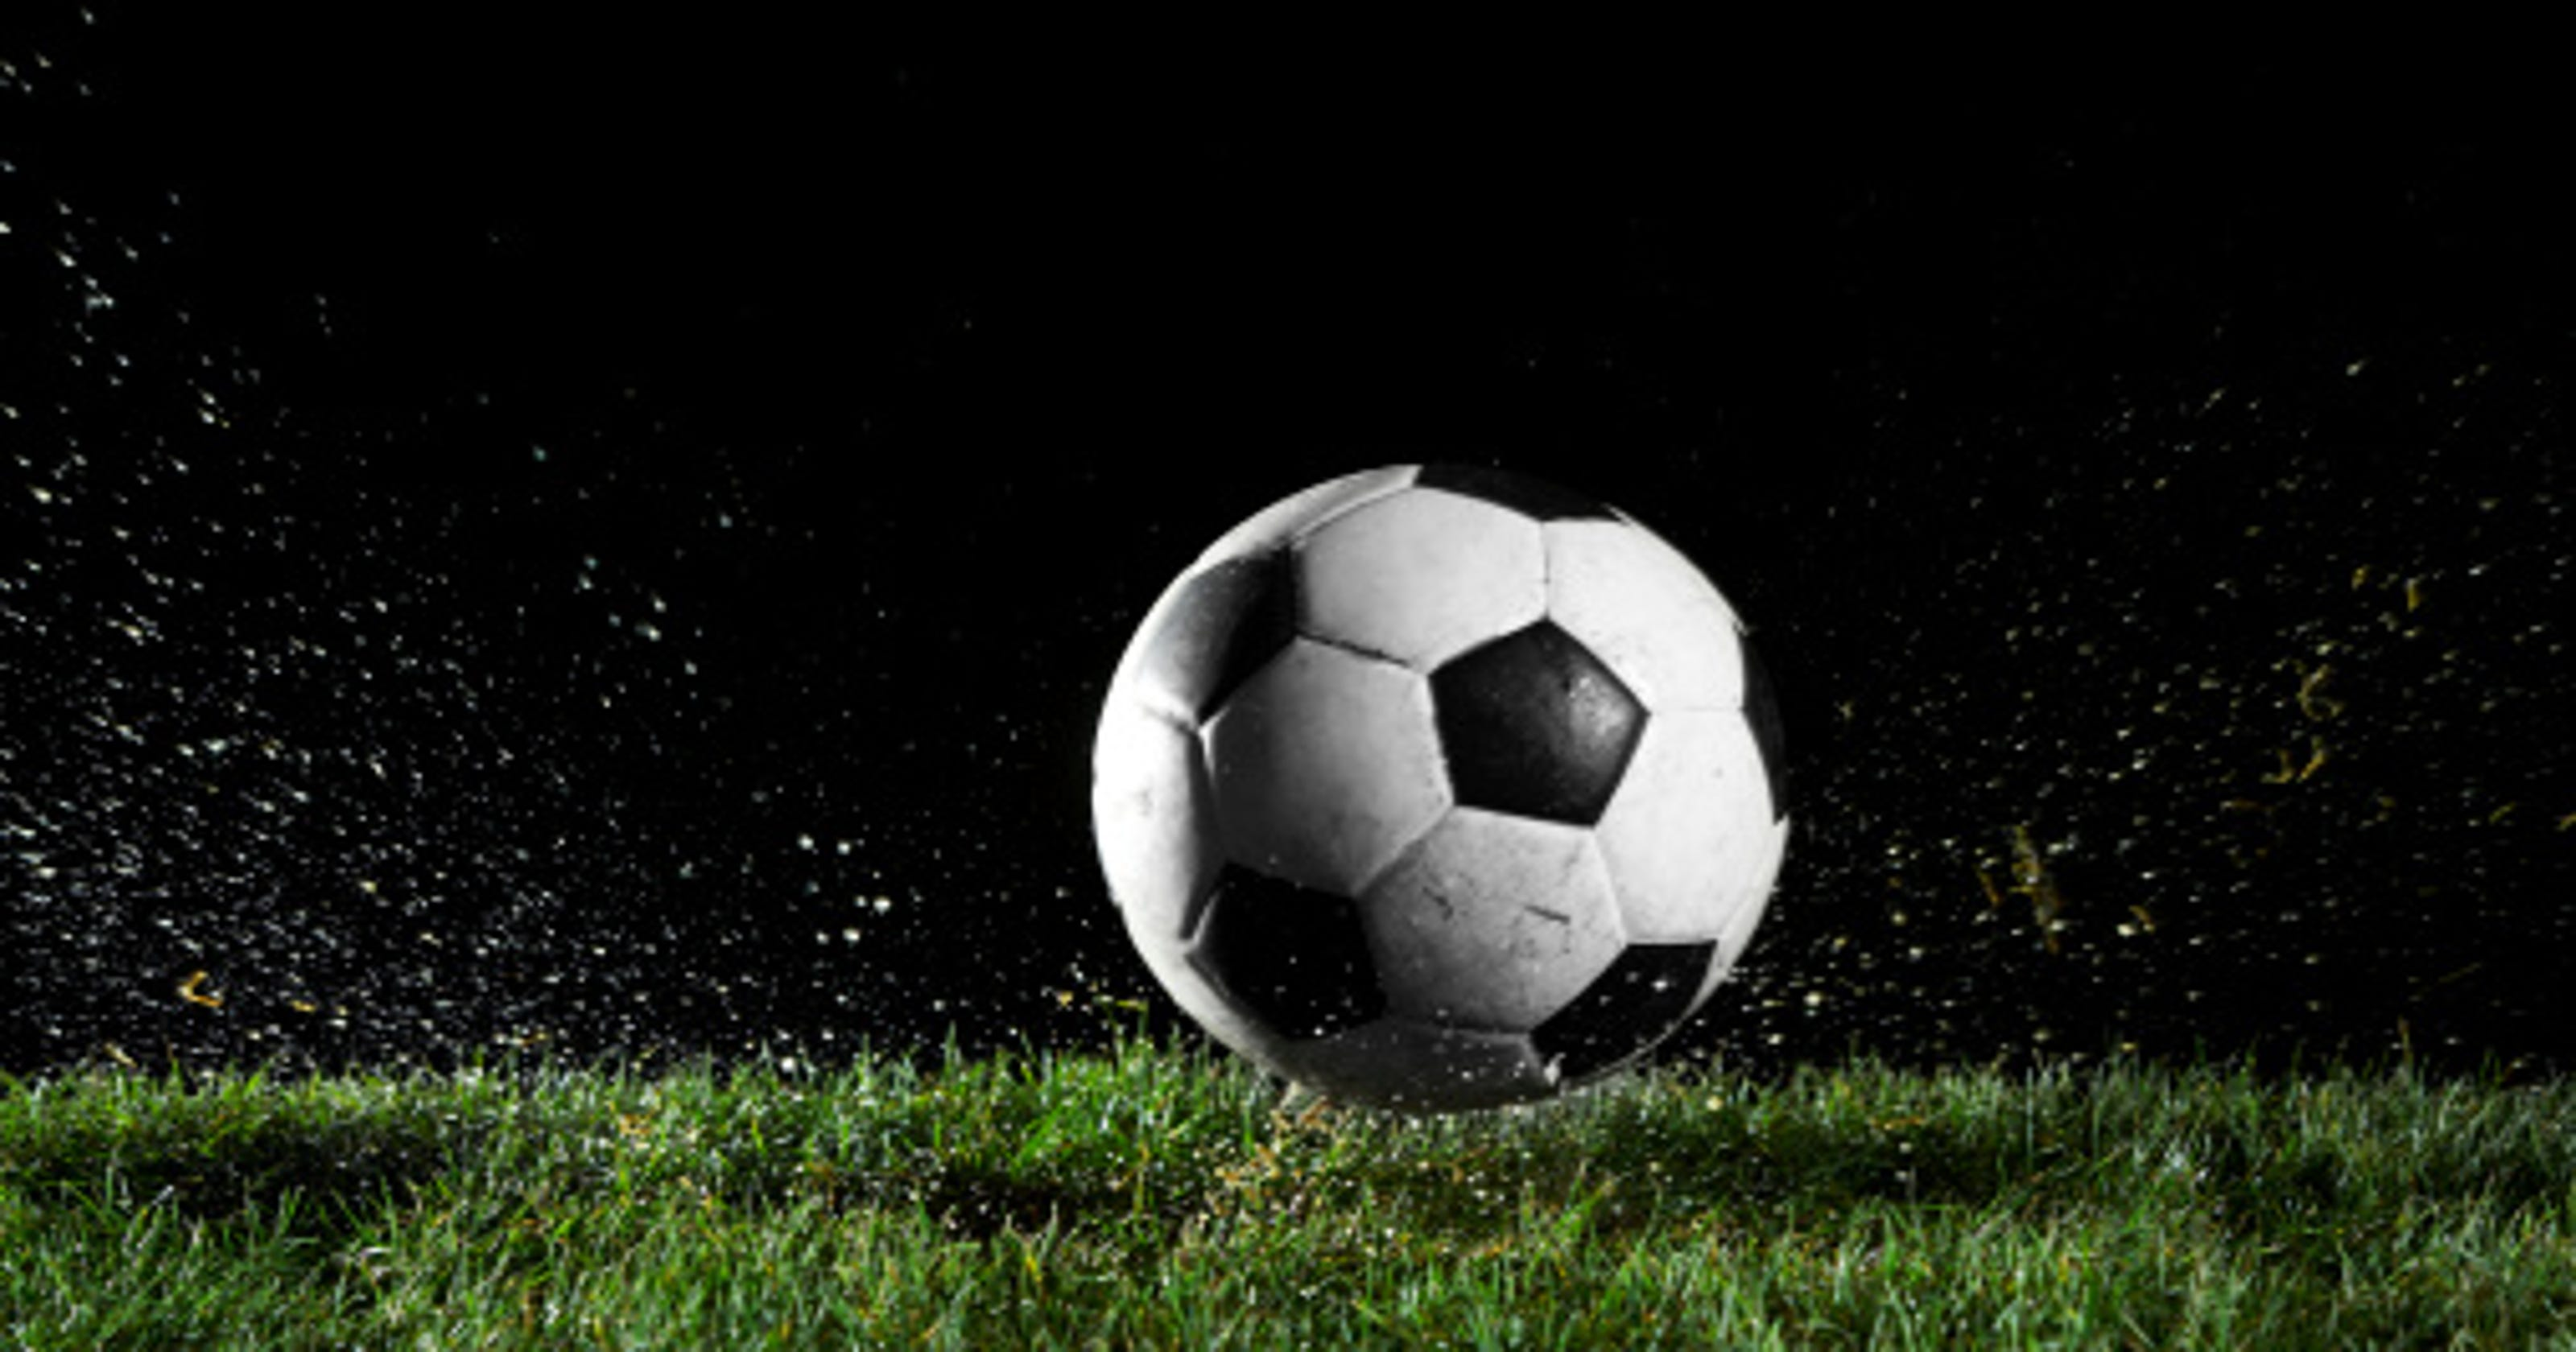 High School Roundup Buitragos Goal Lifts Parsippany Hills Boys Soccer